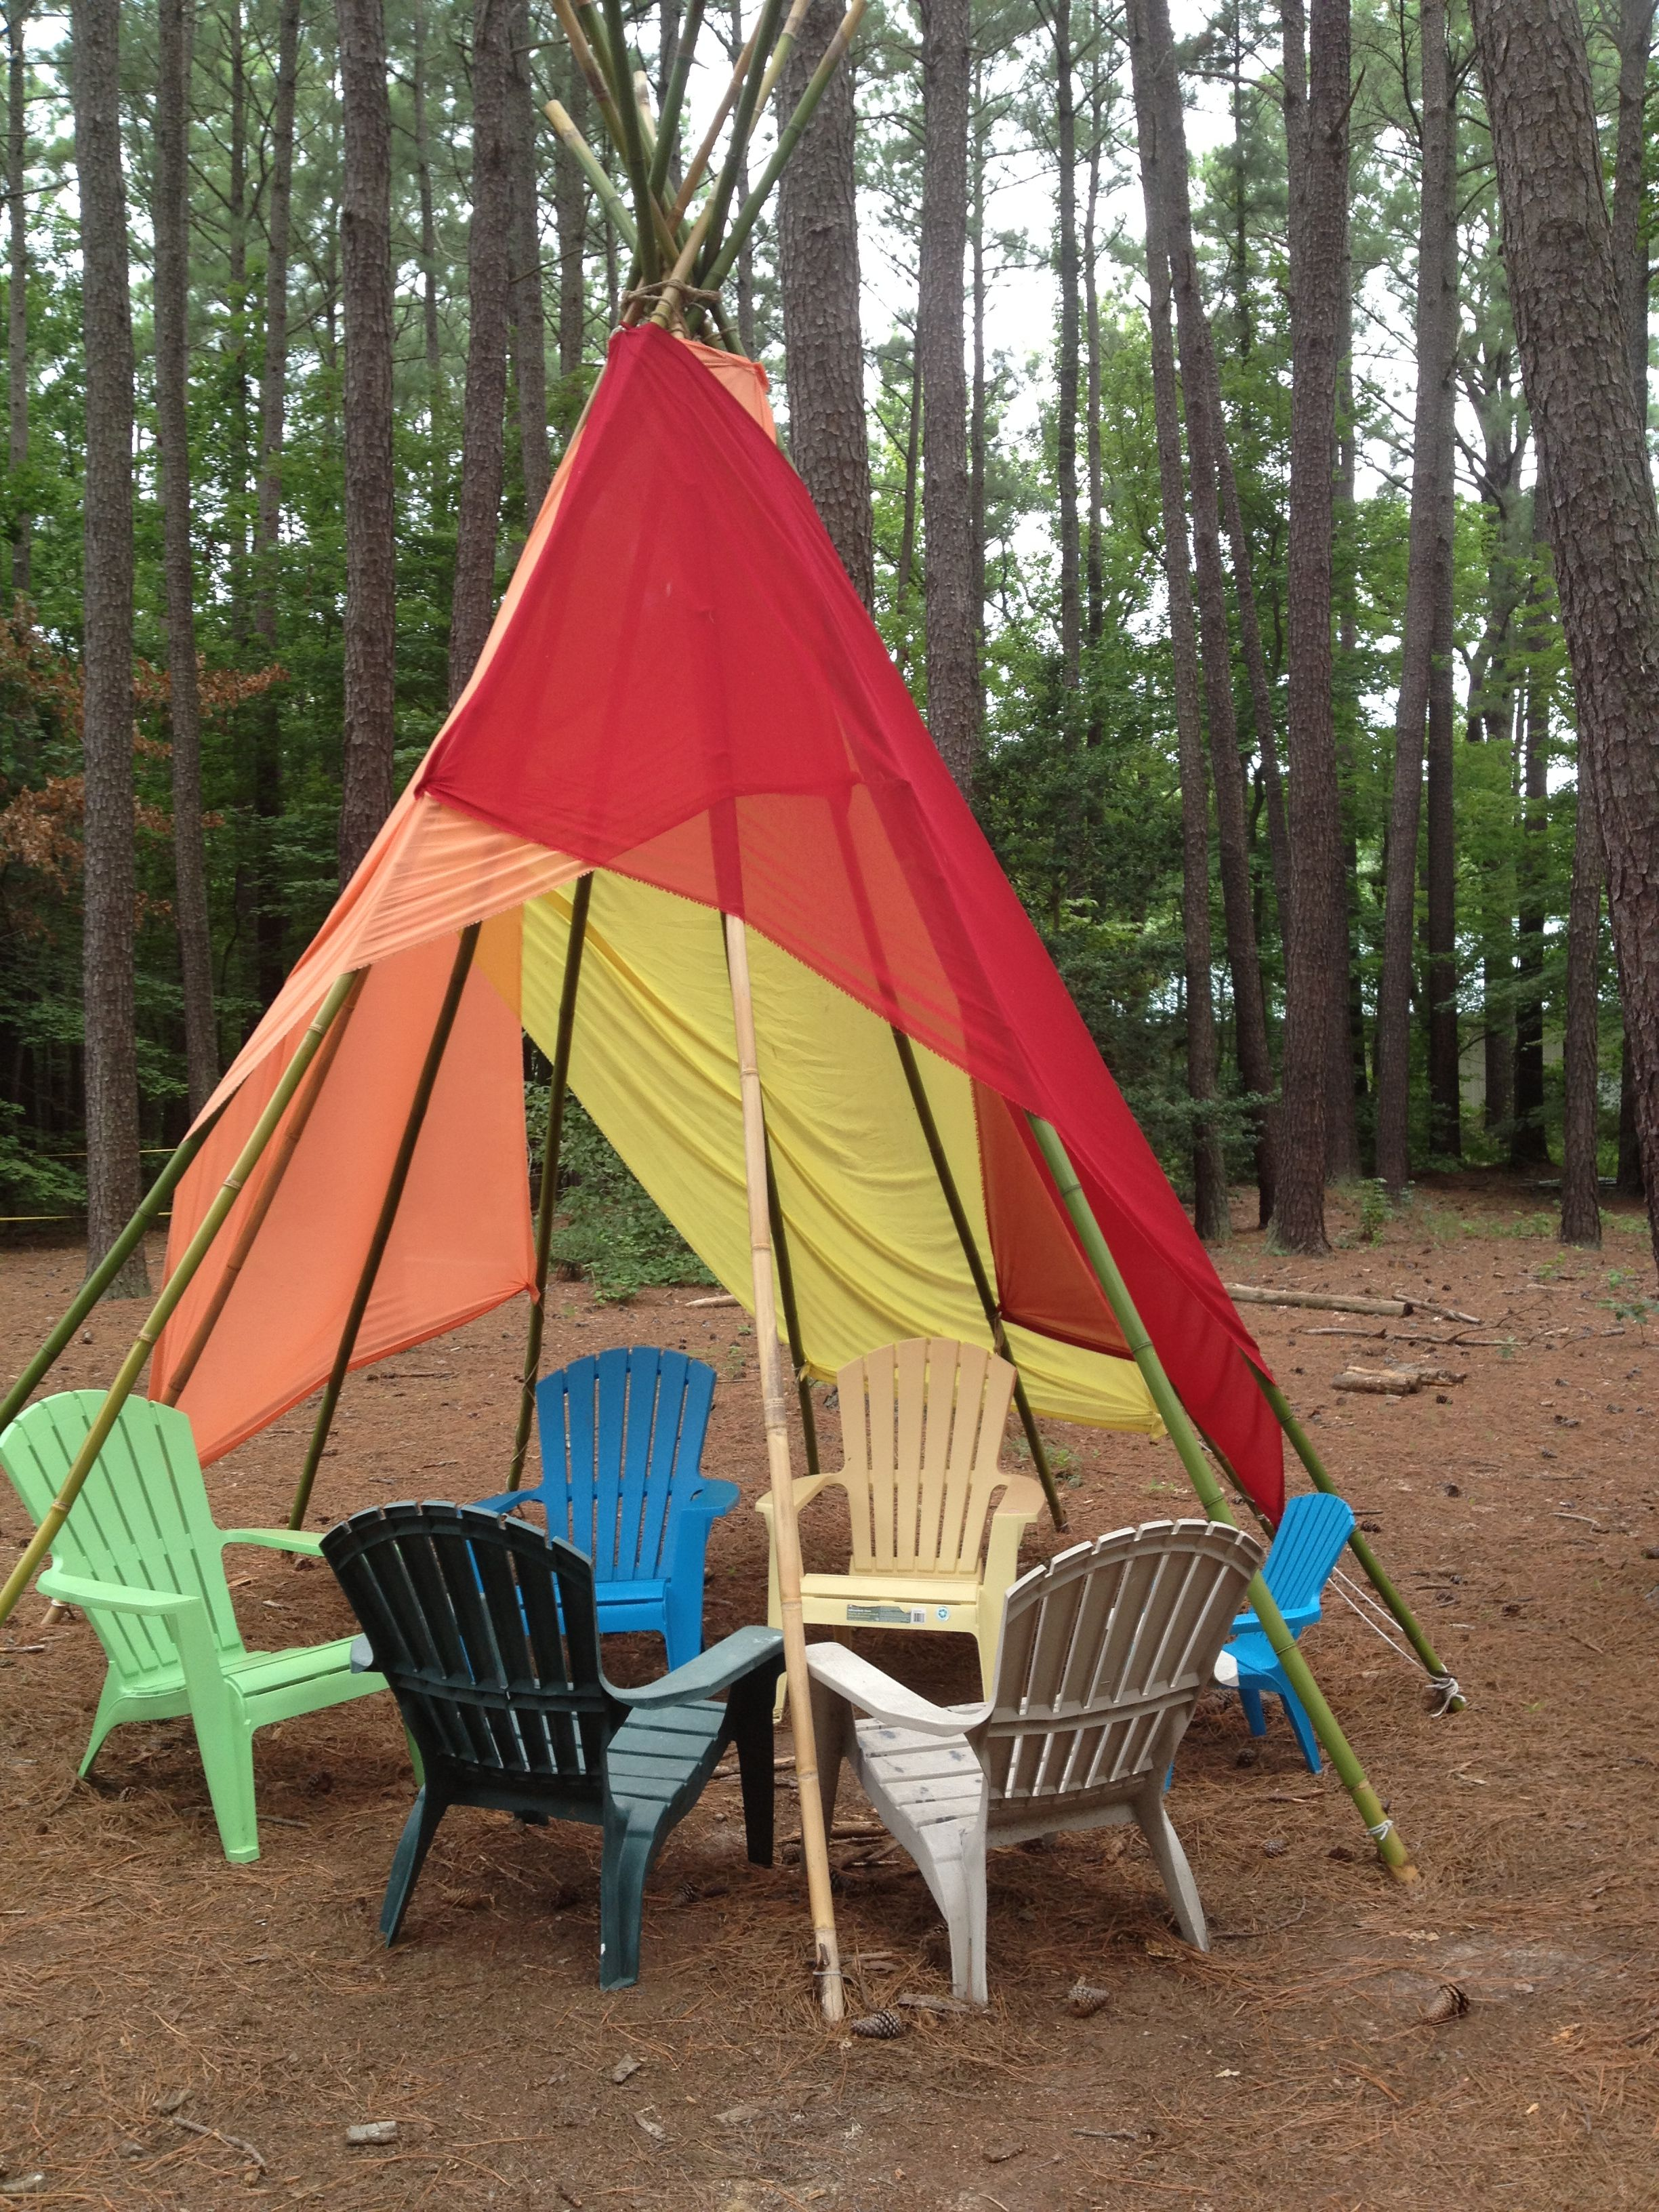 Bamboo tepees provide a fun place to relax/play. www.annmariegarden.org